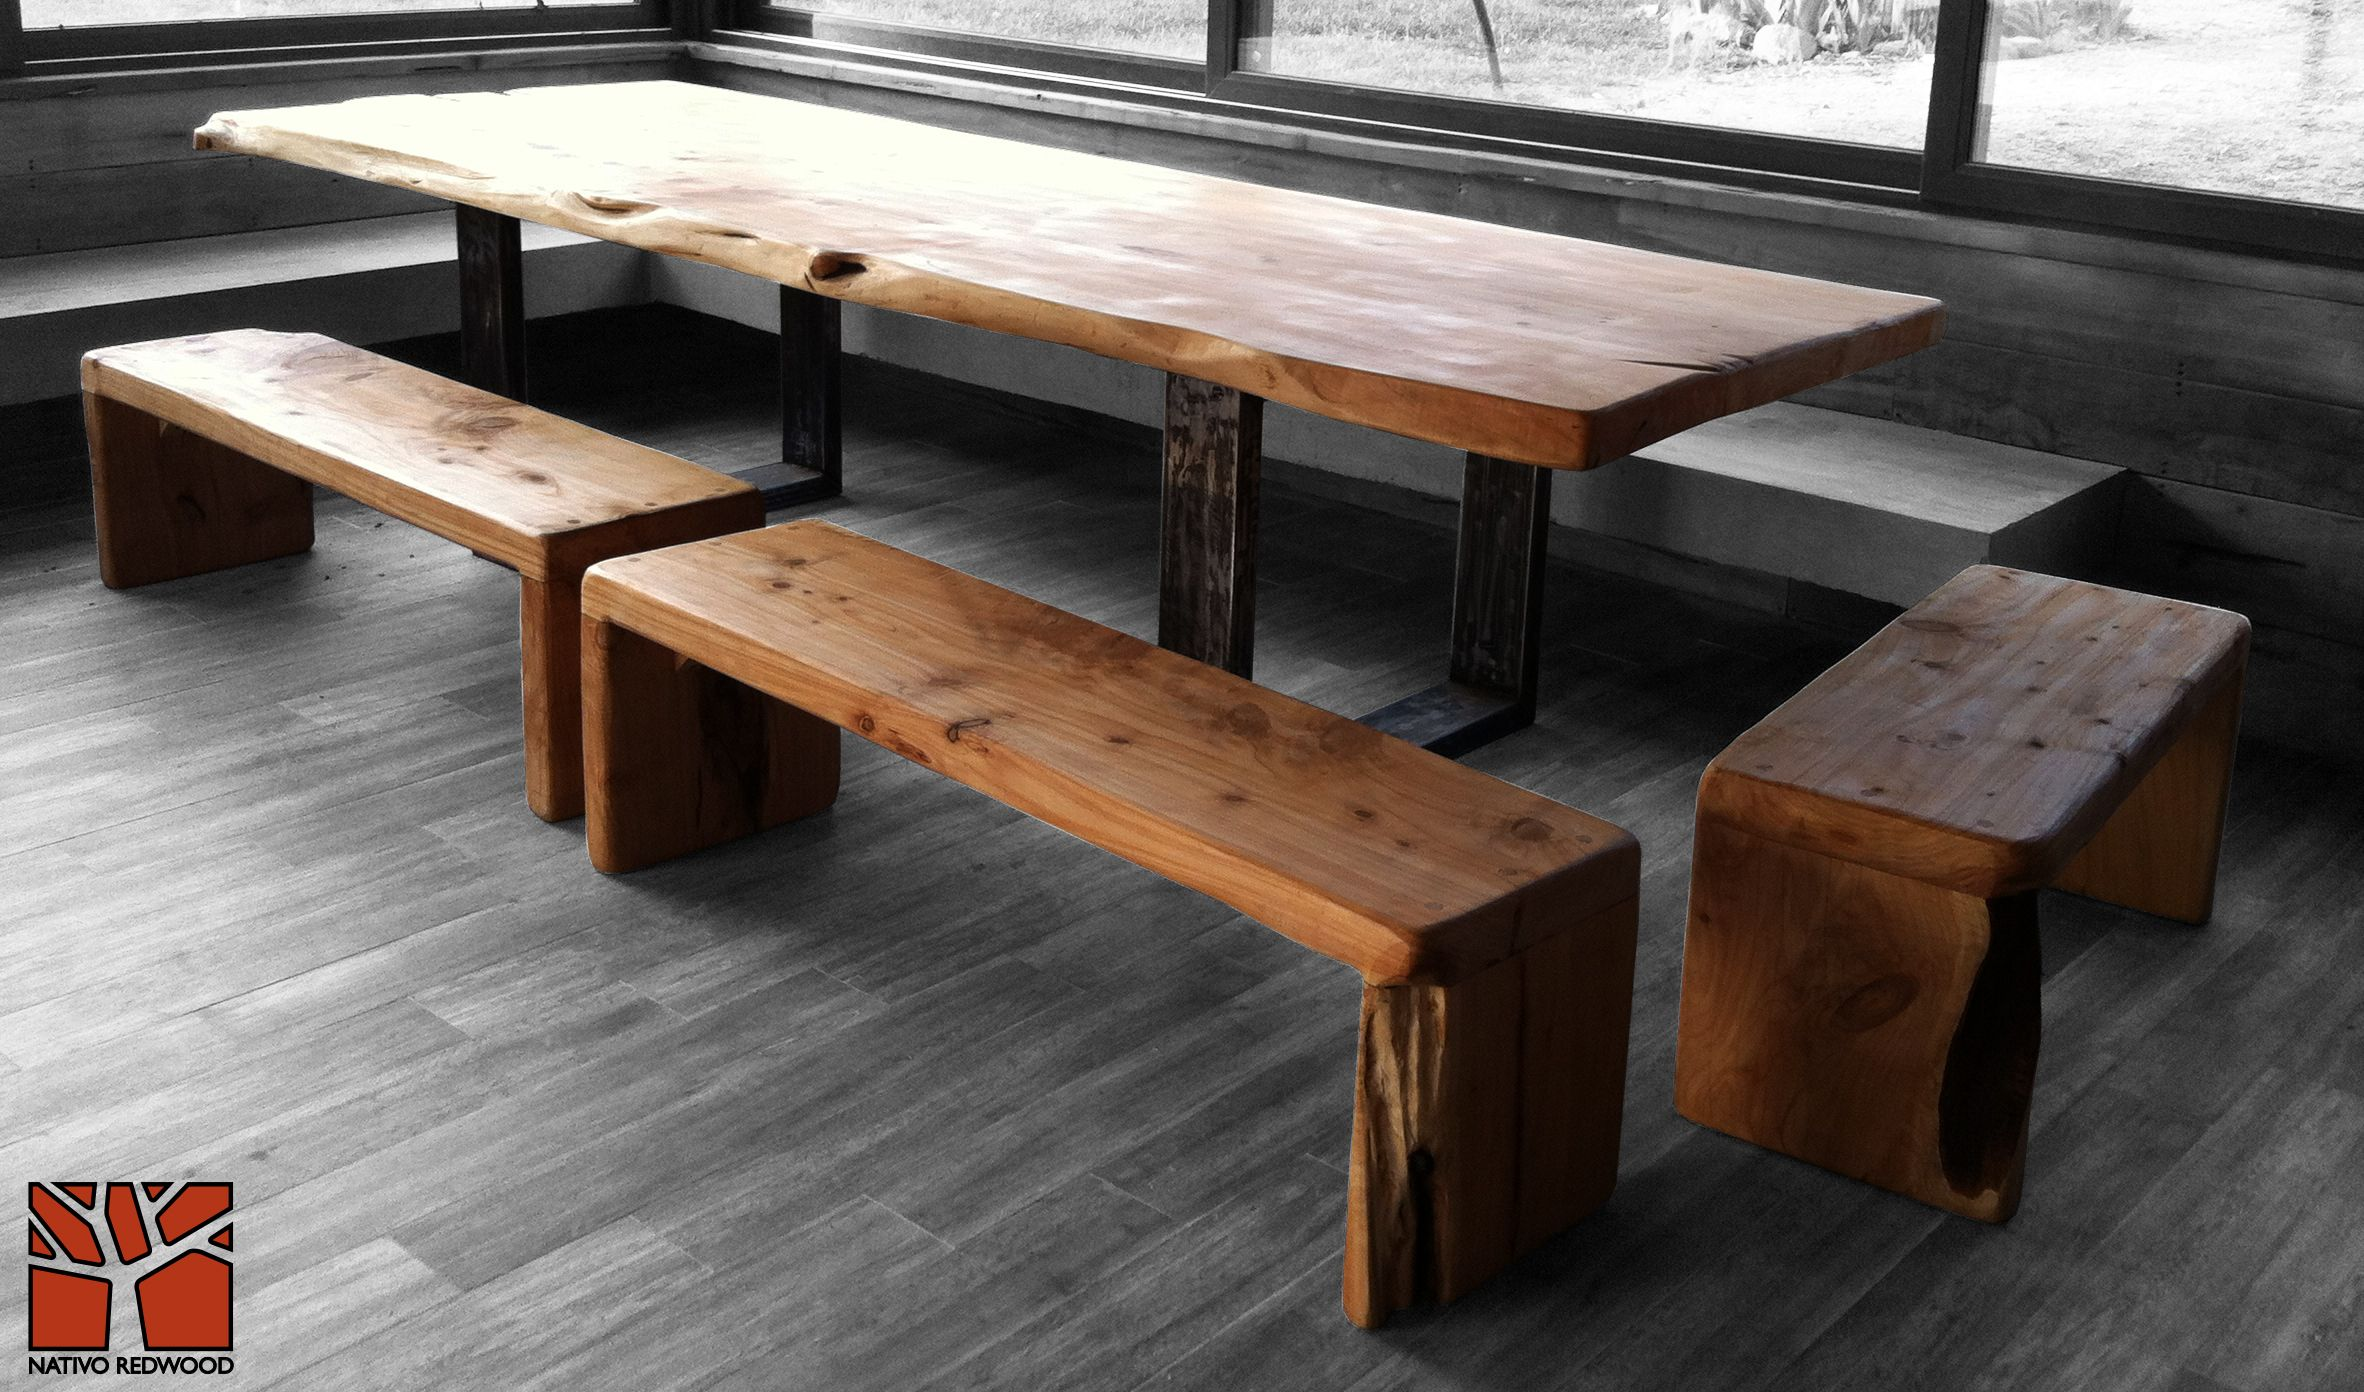 0a6b7f9459955d17e442c0e35864783c Top Result 50 Lovely Redwood Coffee Table Photos 2017 Hgd6